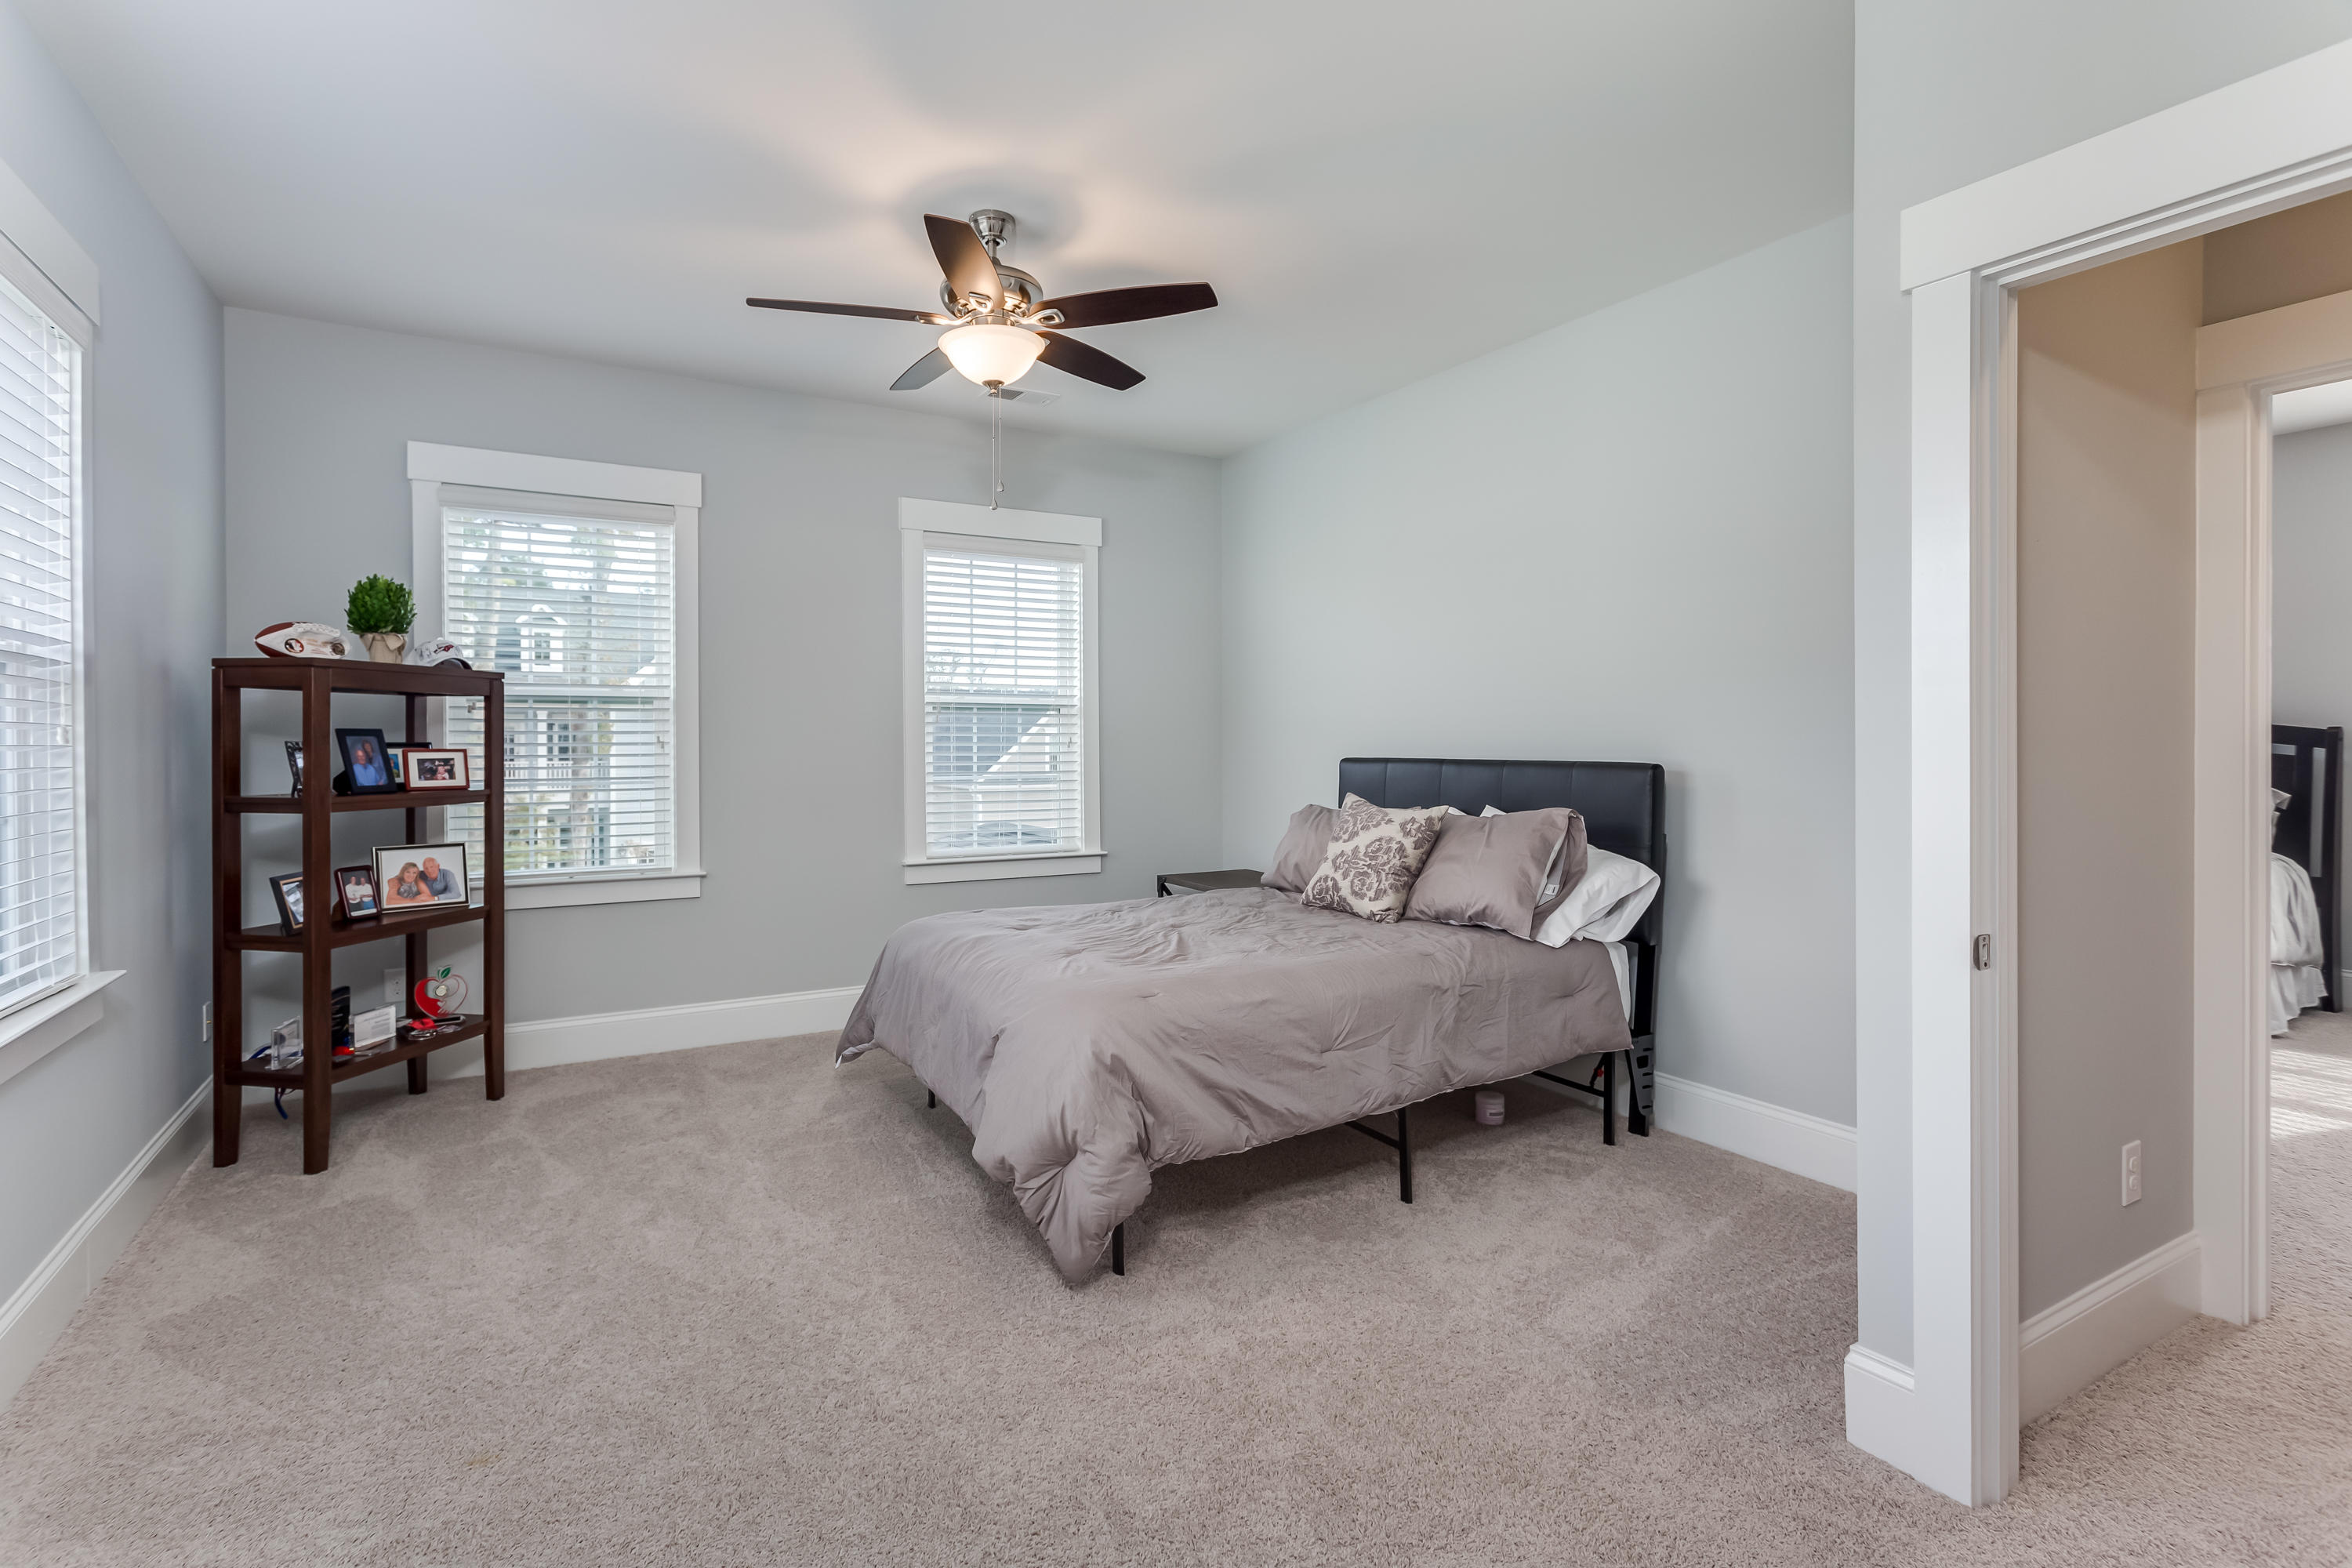 The Village at Stiles Point Homes For Sale - 849 Shutes Folly, Charleston, SC - 32